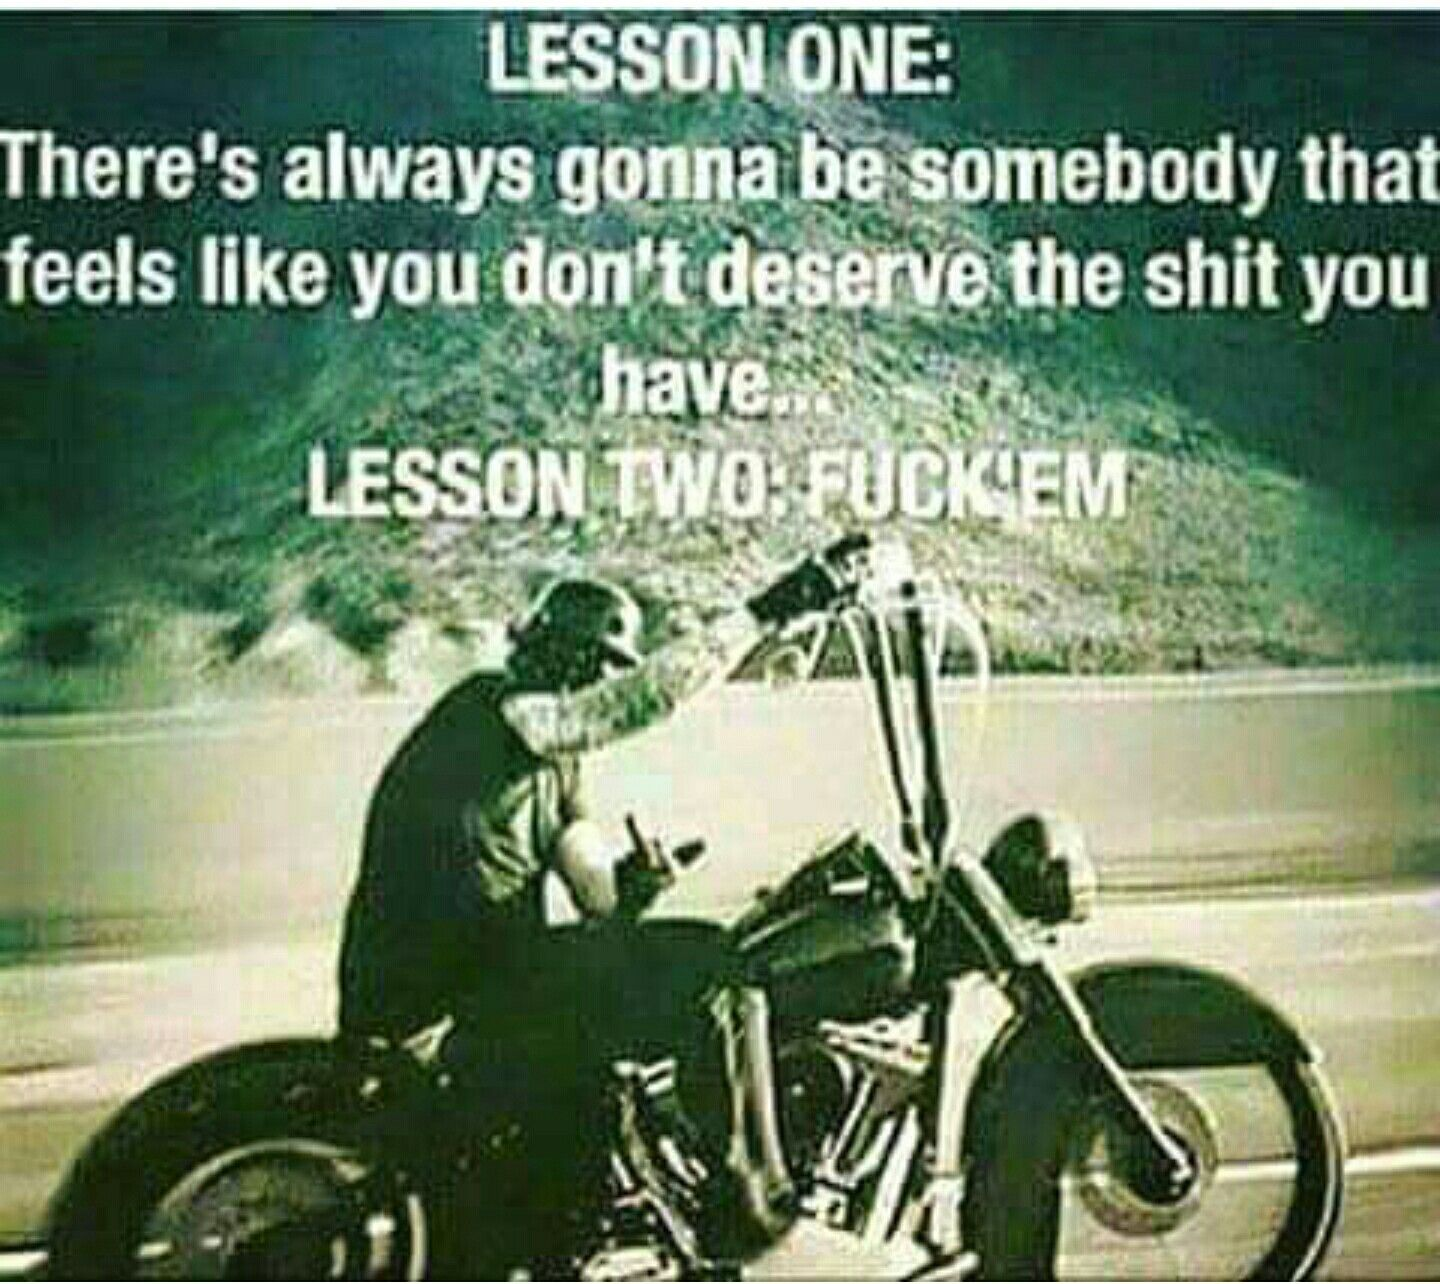 Harley funny biker quotes bar hopper challenge com - Call Them What You Will Motorcycle Memes Biker Quotes Or Rules Of The Road They Are What They Are A Biker Way Of Life